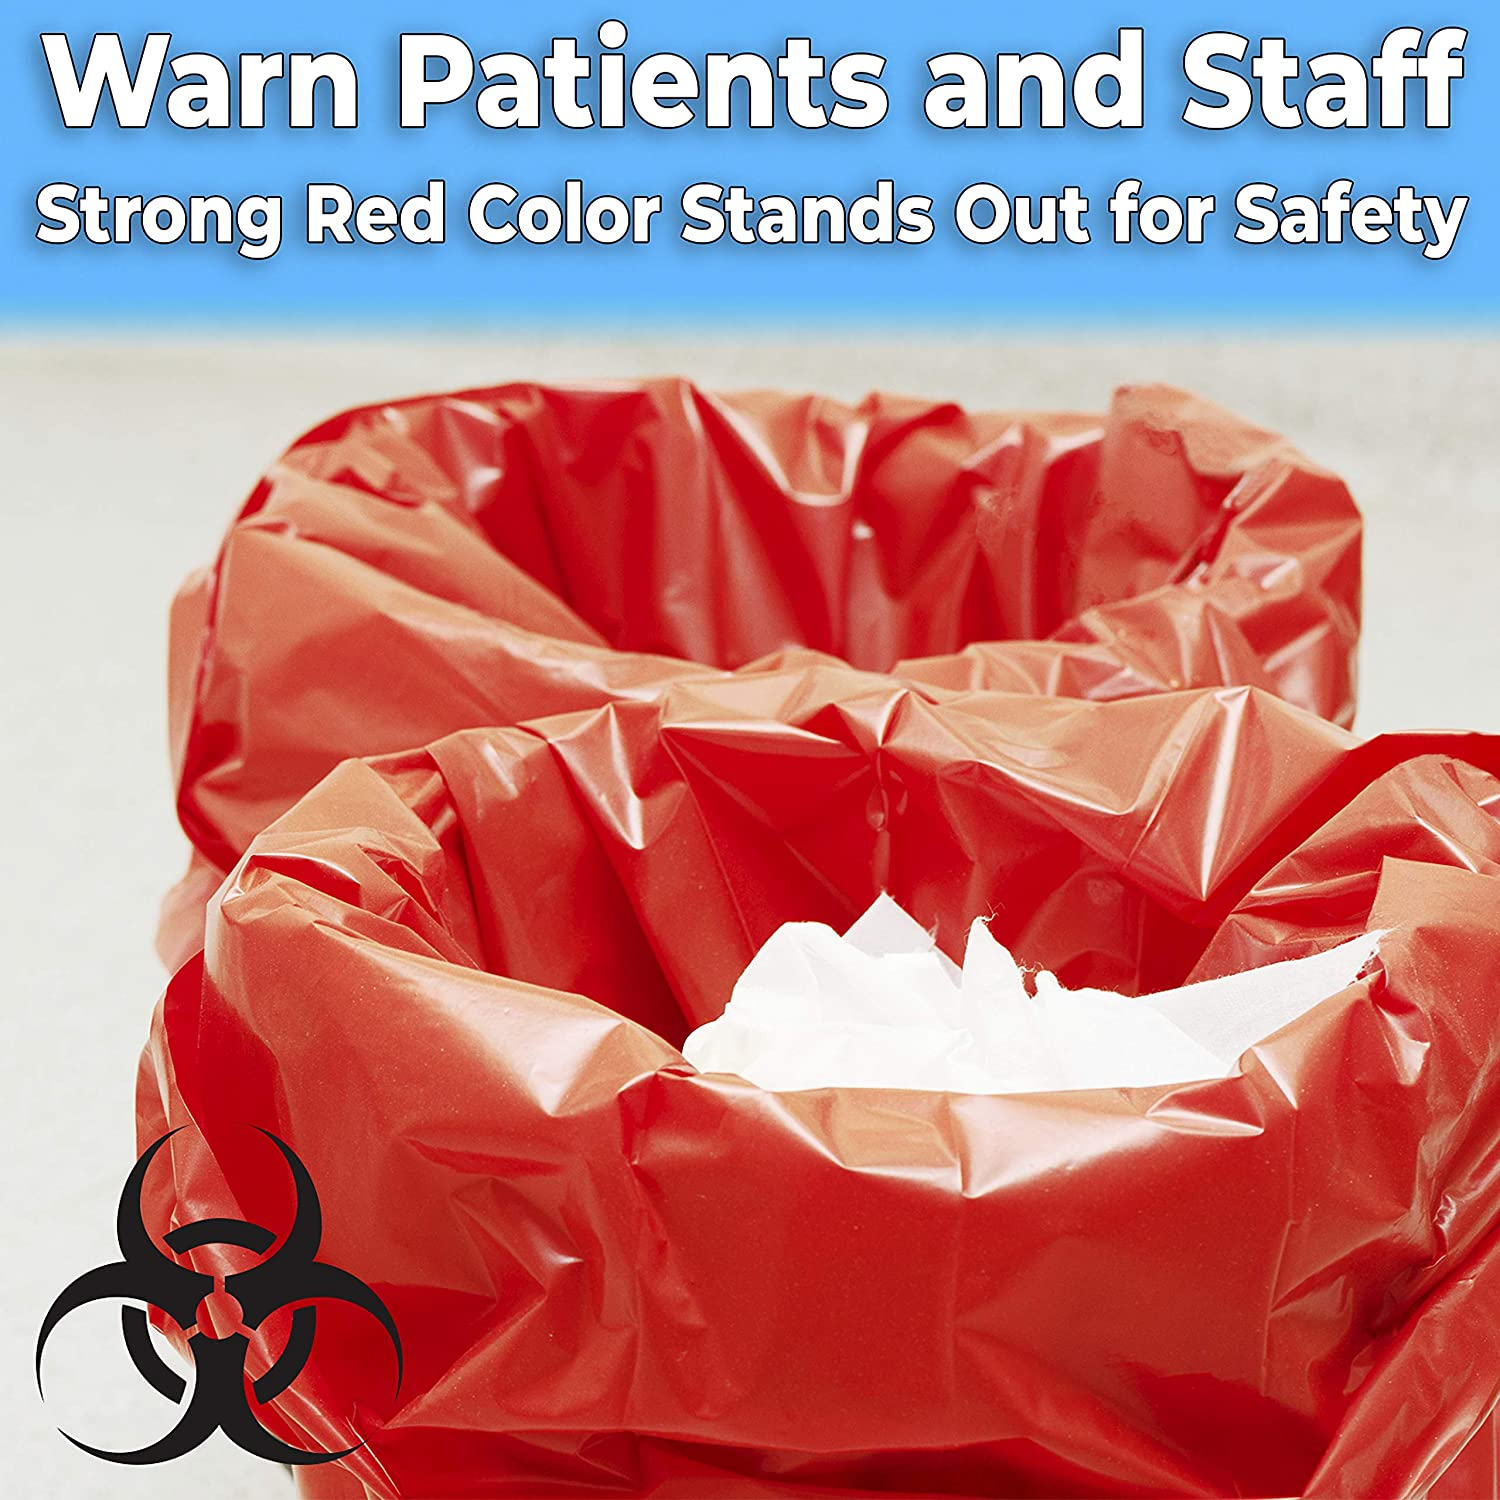 miniature 6 - 10 Gallon Biohazard Bag for Infectious Waste Trash Liners, Red